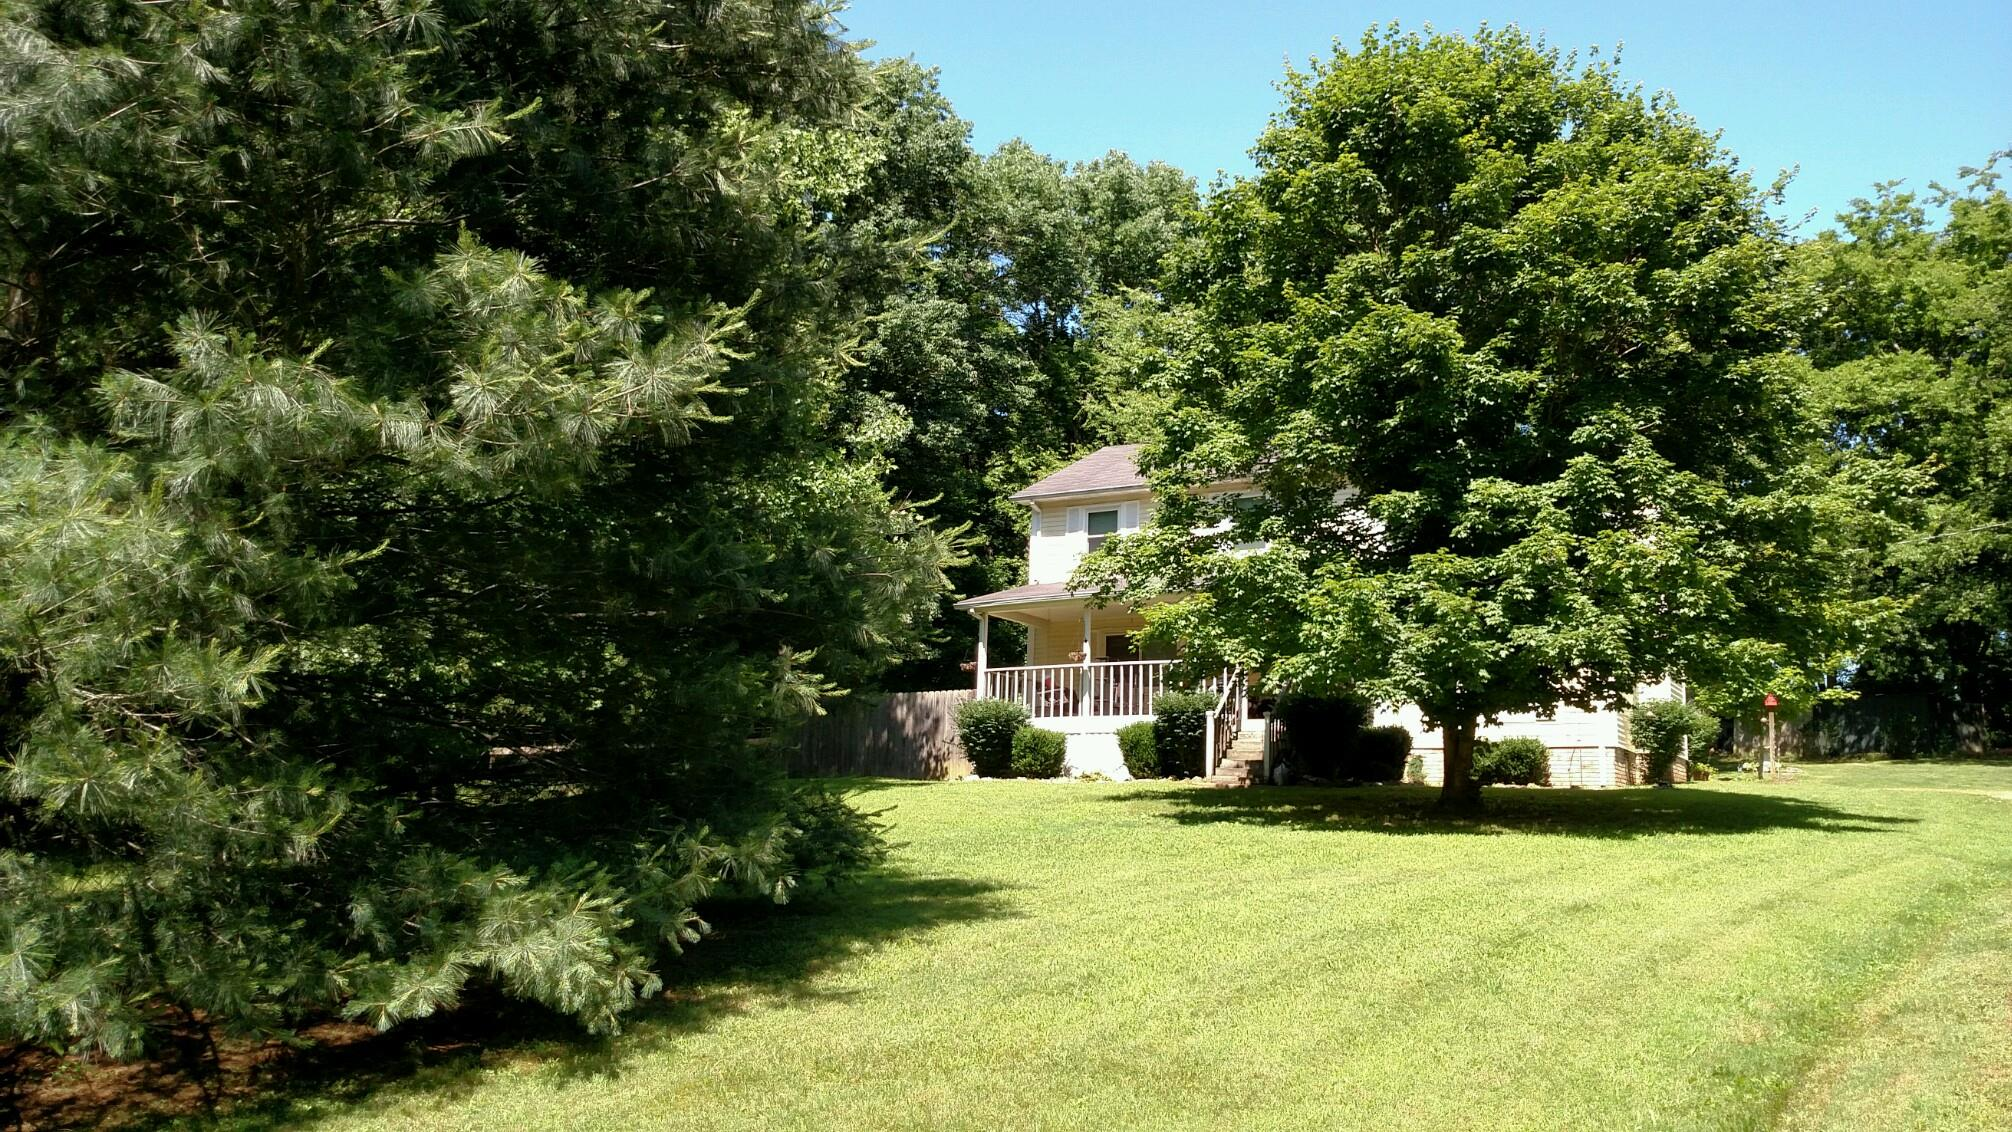 2807 Henry Gower Rd, Pleasant View, TN 37146